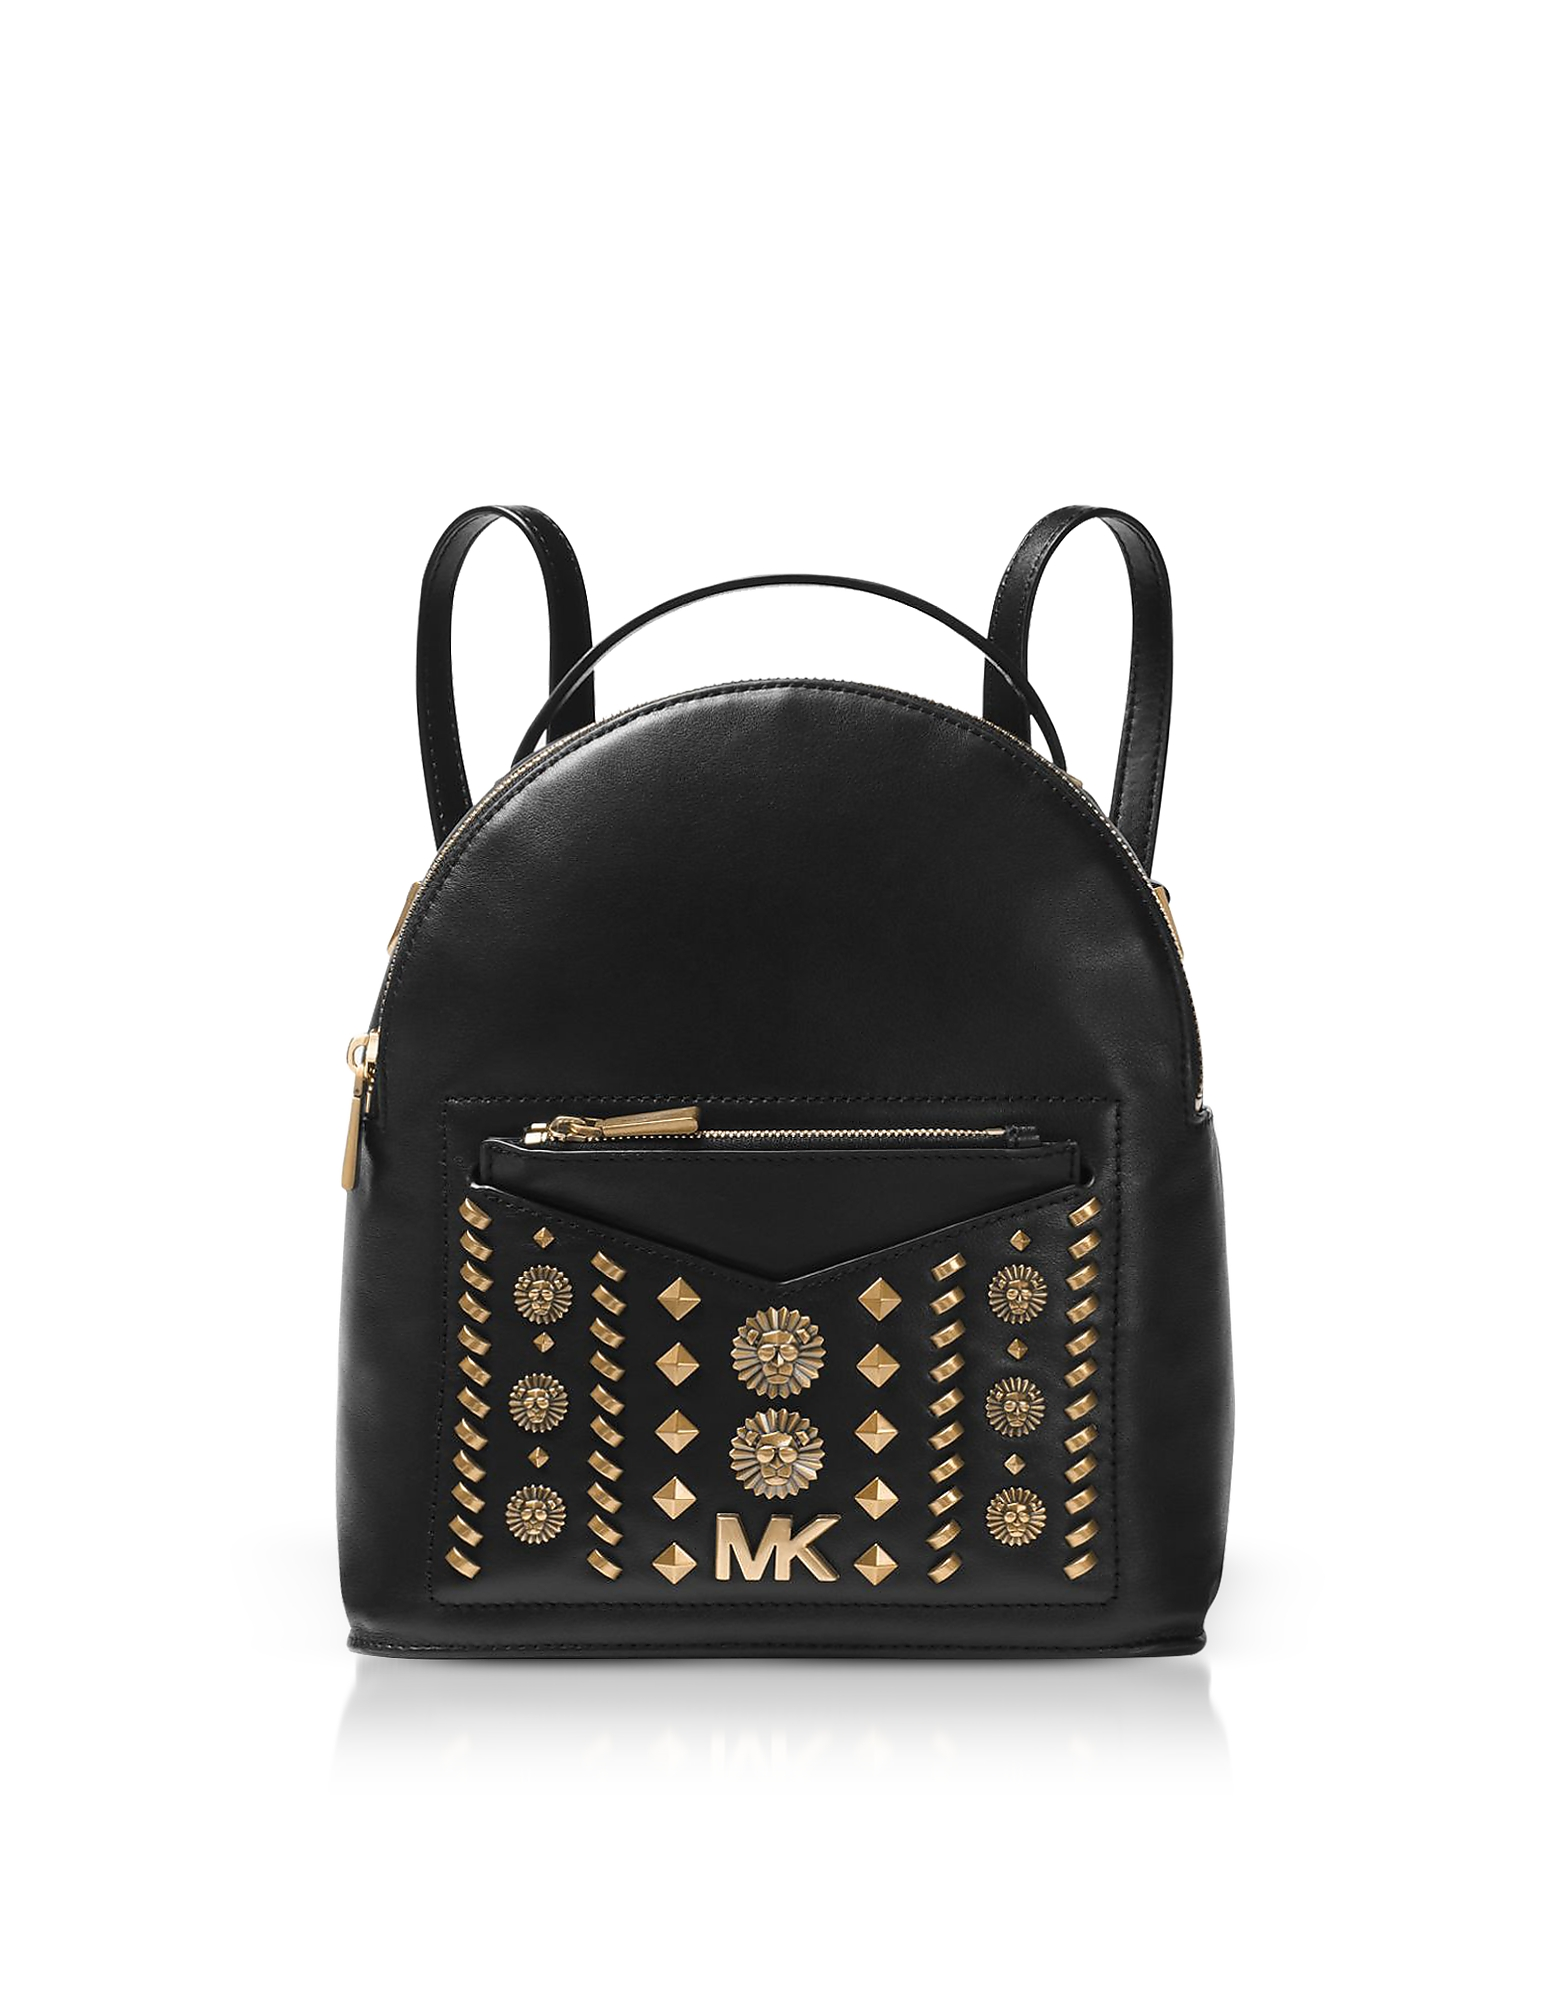 3fdf229c565a MICHAEL KORS JESSA SMALL EMBELLISHED LEATHER CONVERTIBLE BACKPACK ...